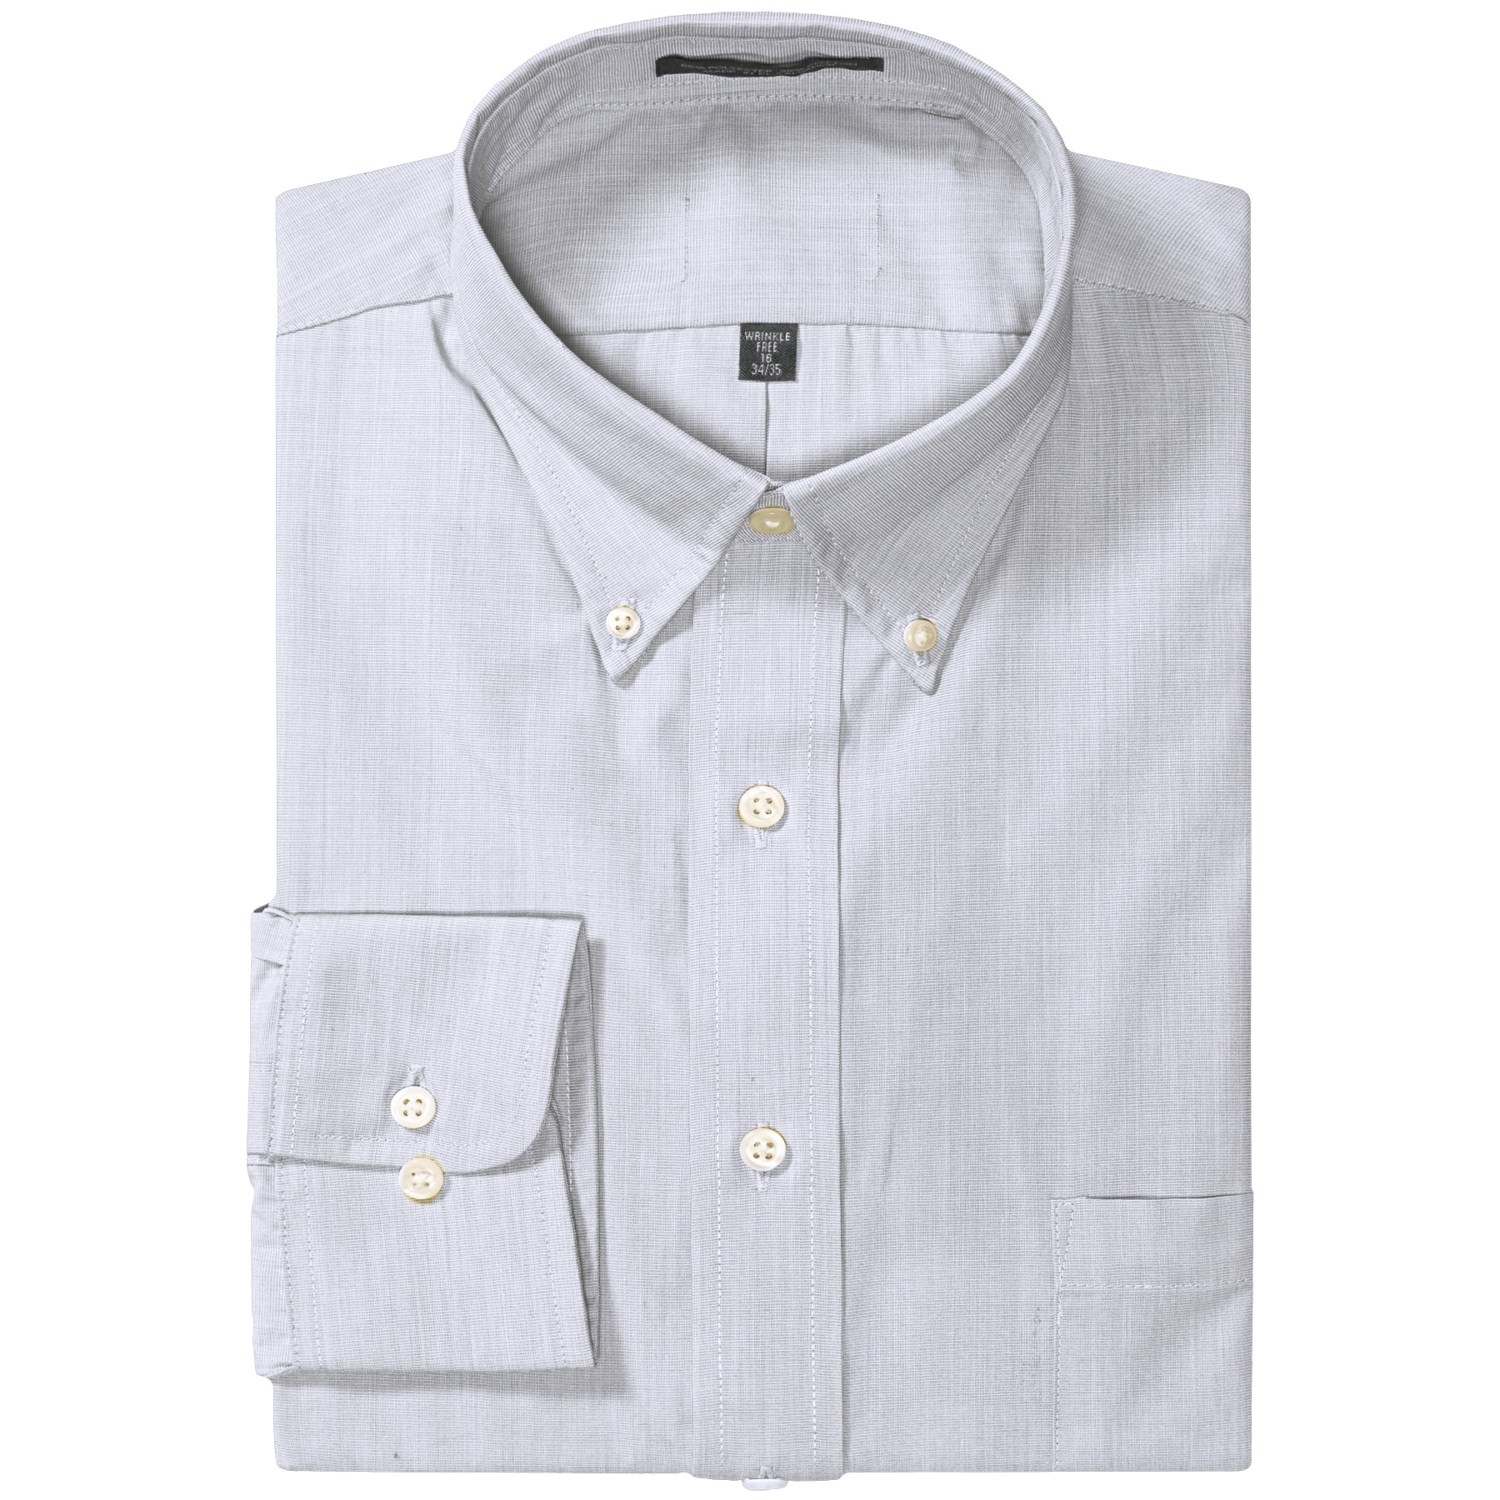 Easy care dress shirt button down long sleeve for men for Mens white button down dress shirts